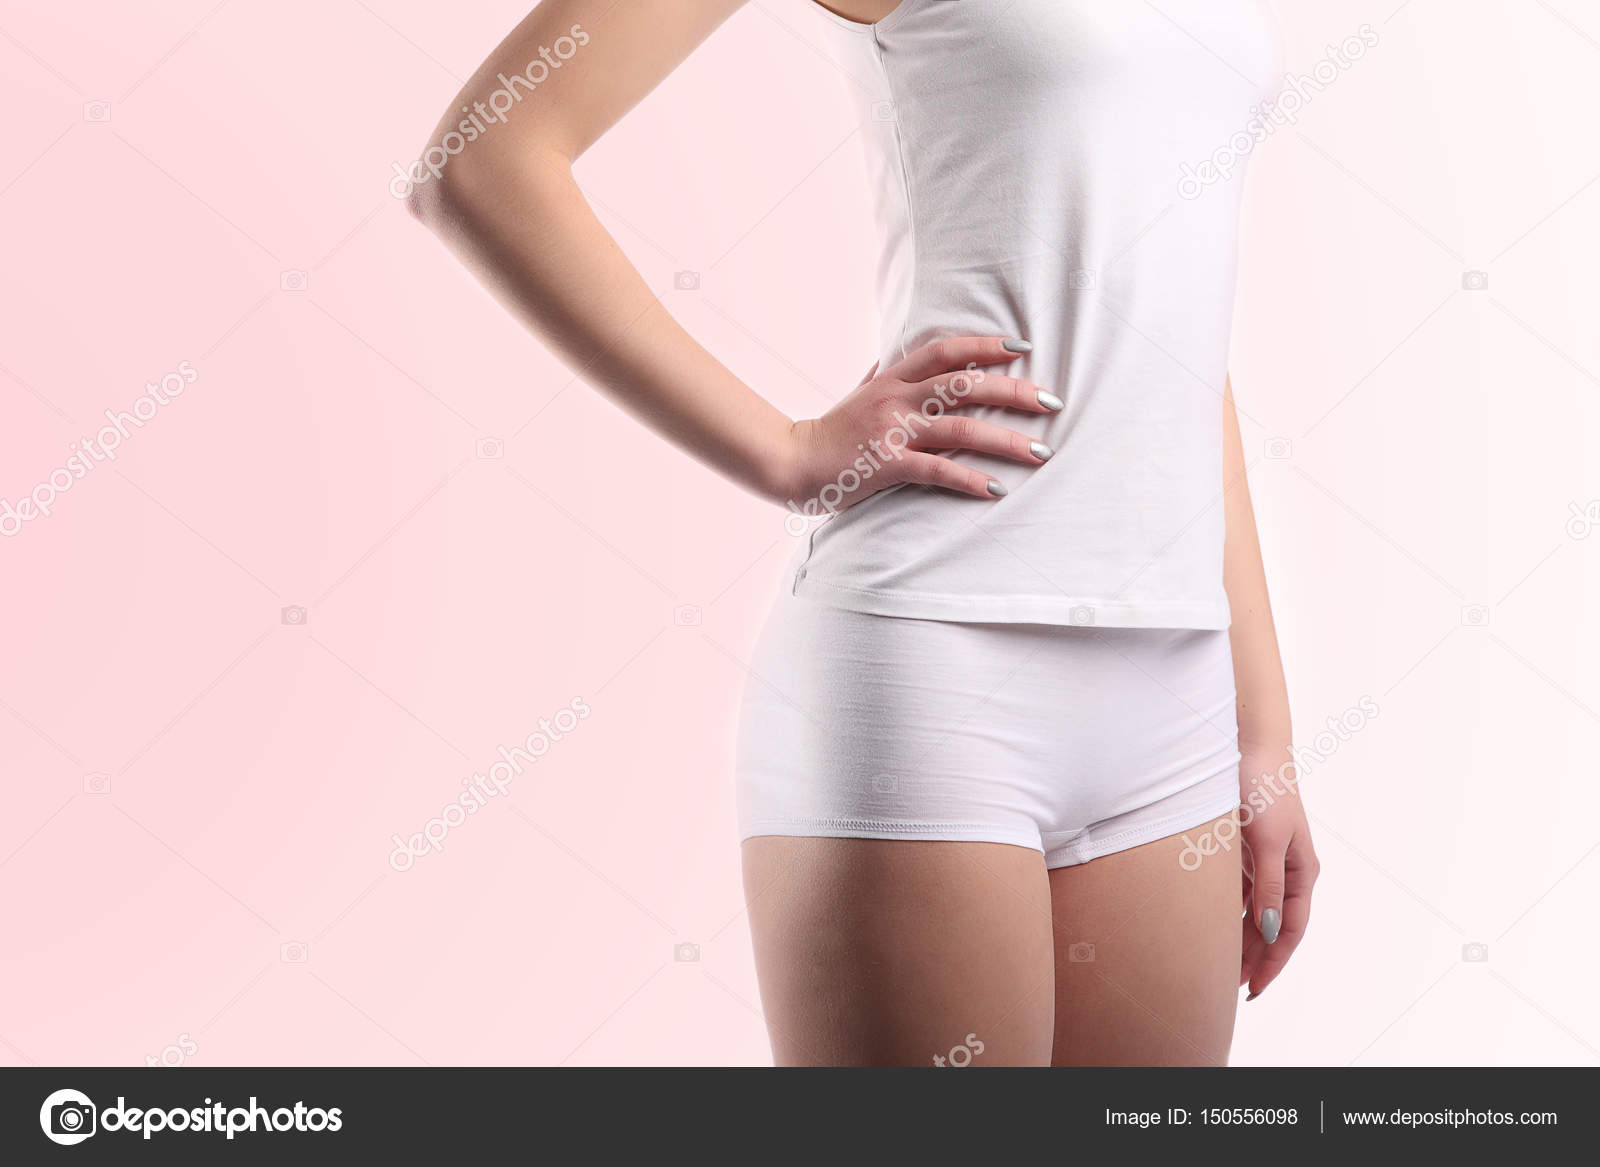 7c4bb3433624 Young woman body with white cotton panties and shirt isolated on pink —  Stock Photo